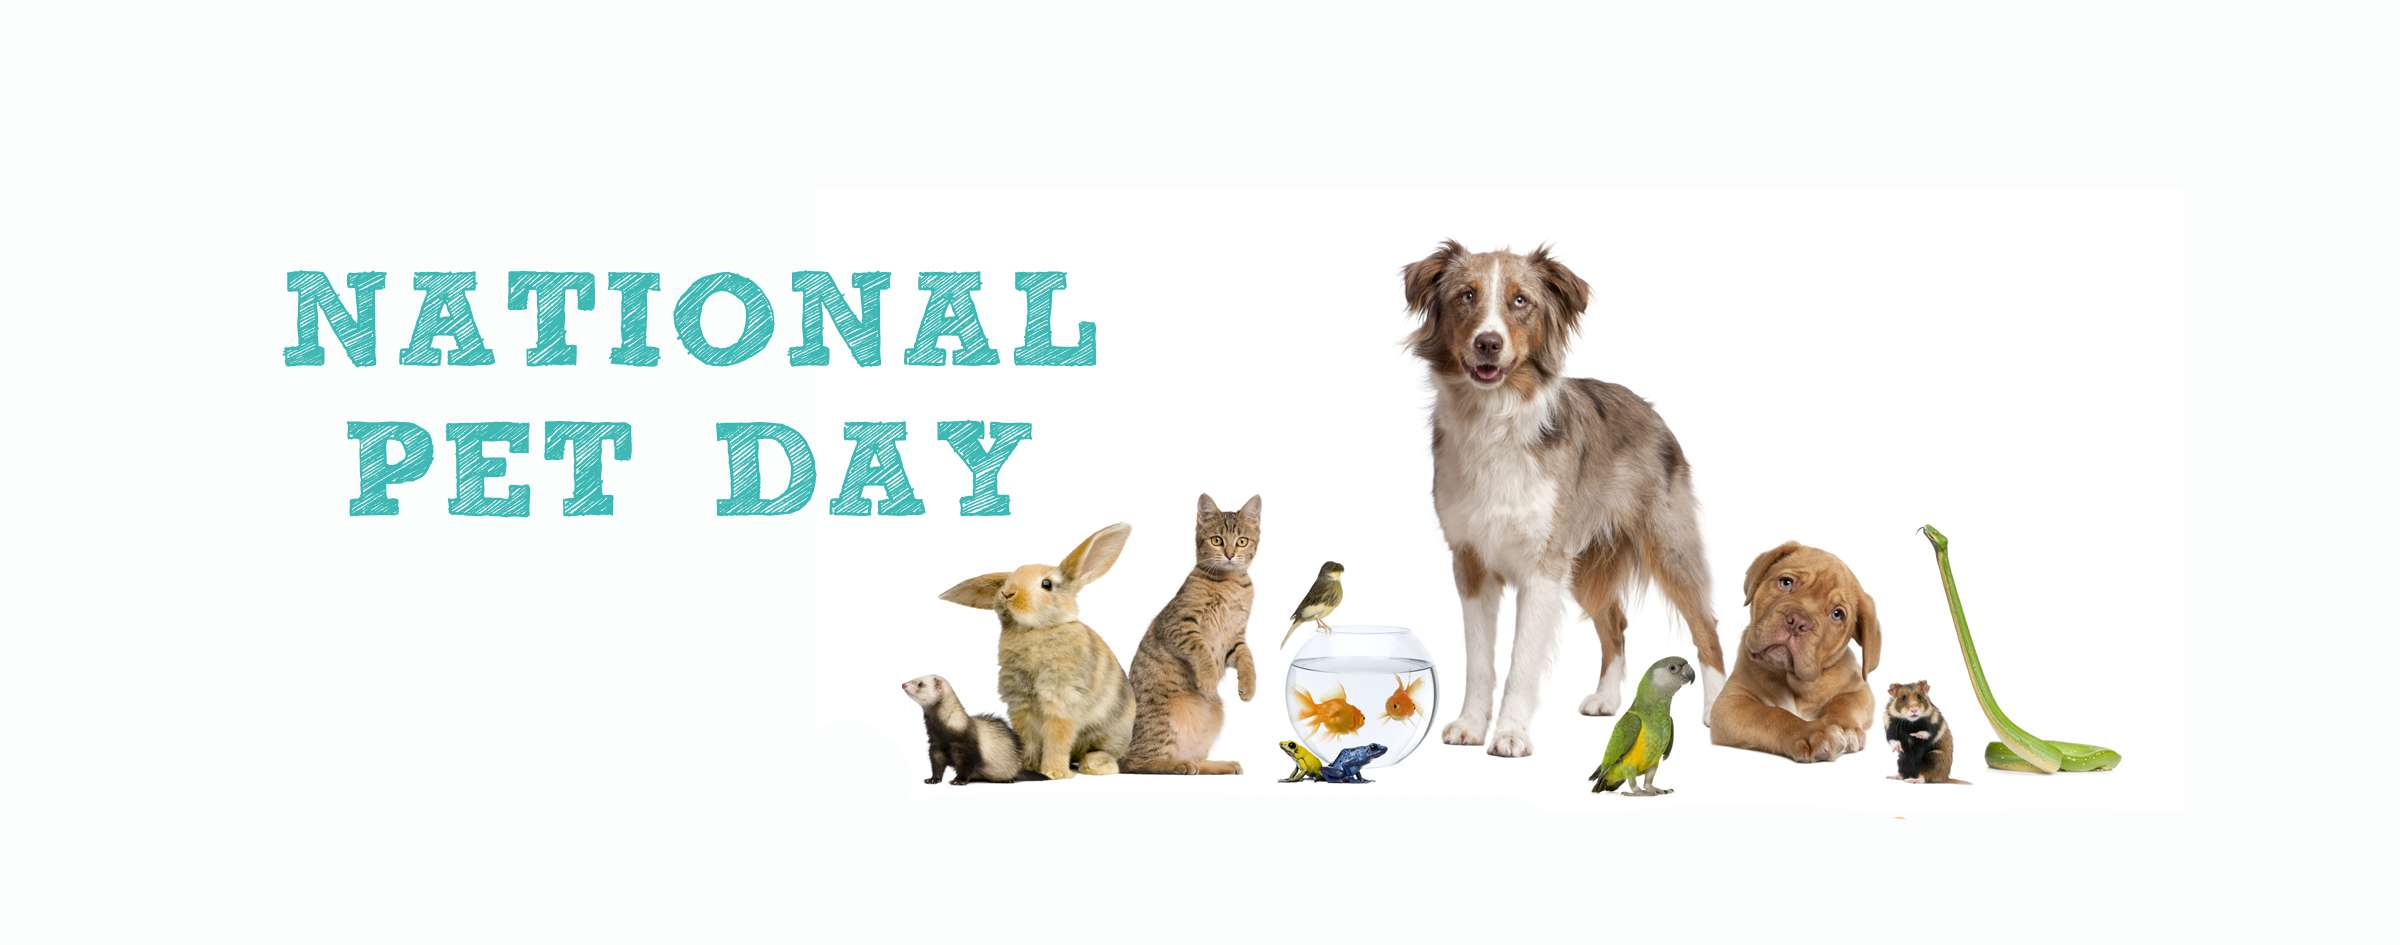 National Pet Day Wishes Images